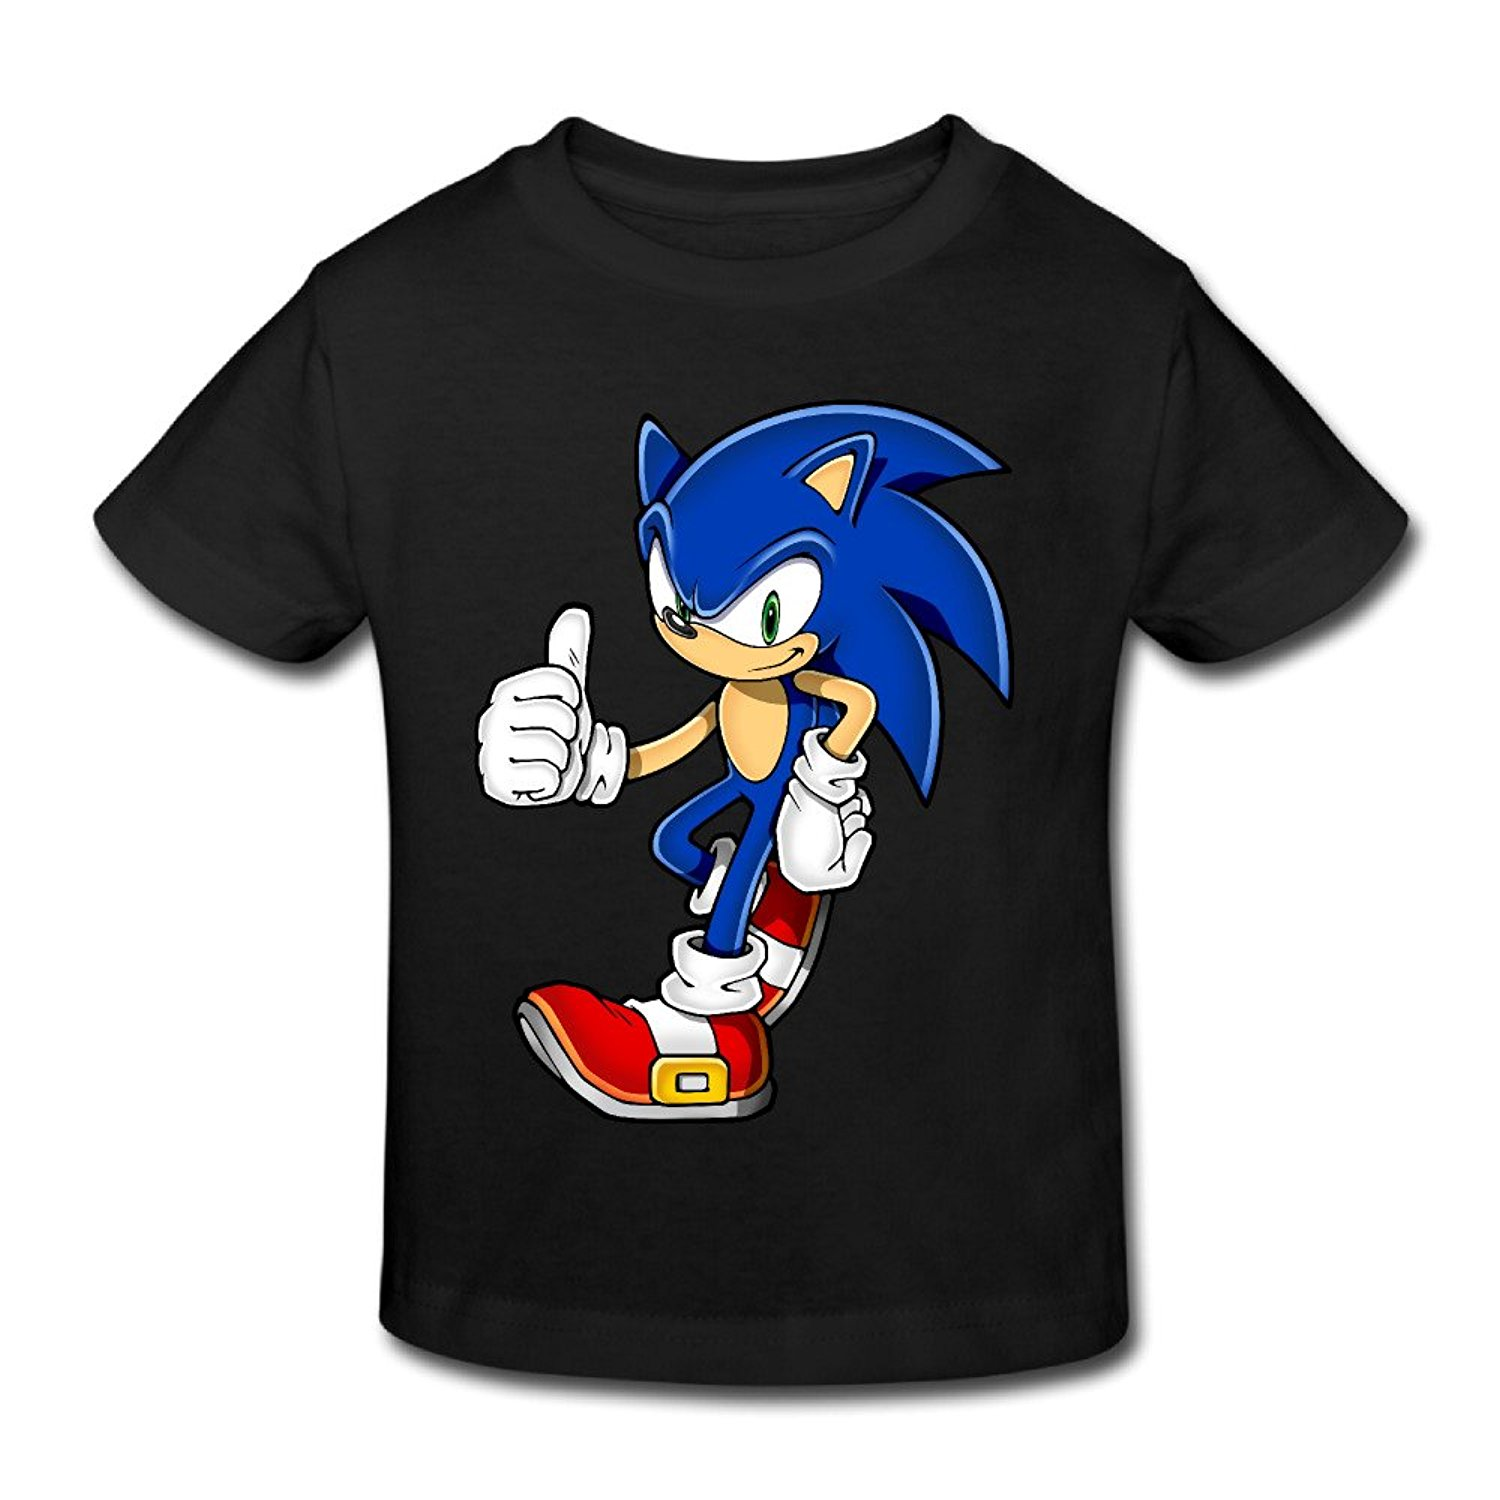 Toddler S 100 Cotton Cool Sonic The Hedgehog Style T Shirt Style